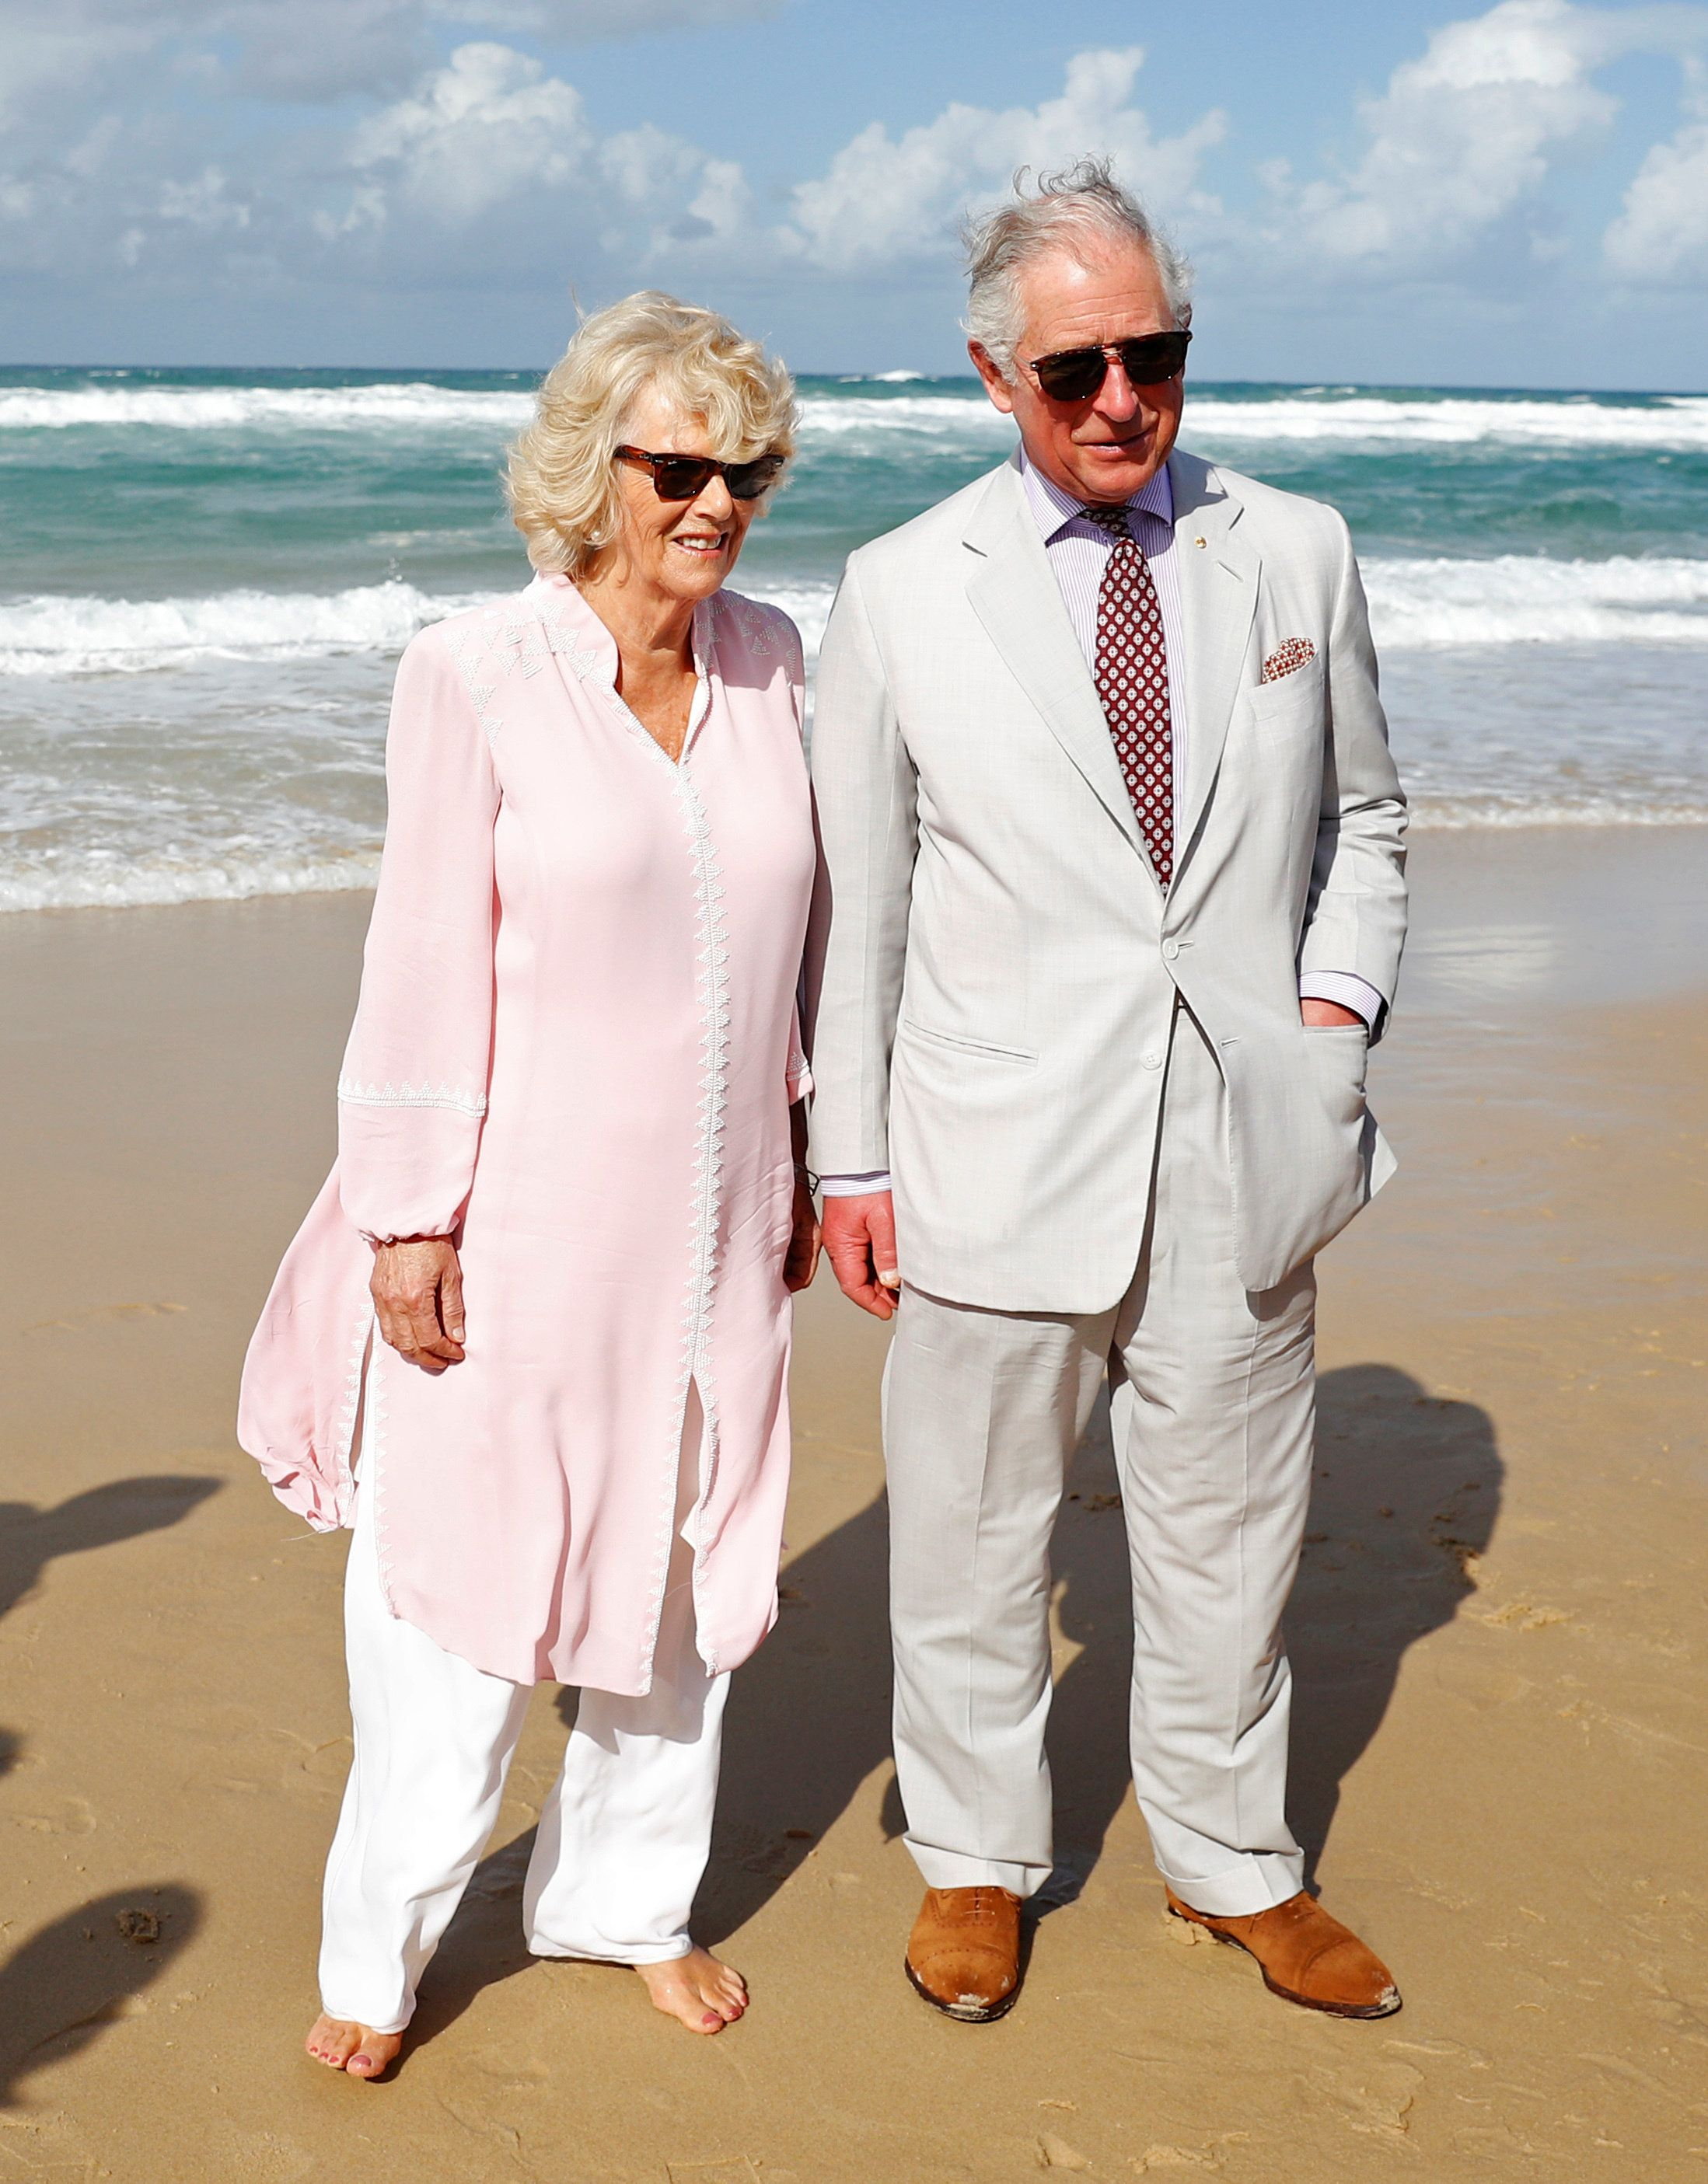 Britain's Prince Charles and Camilla, Duchess of Cornwall visit Broadbeach, Australia April 5, 2018.   REUTERS/Phil Noble